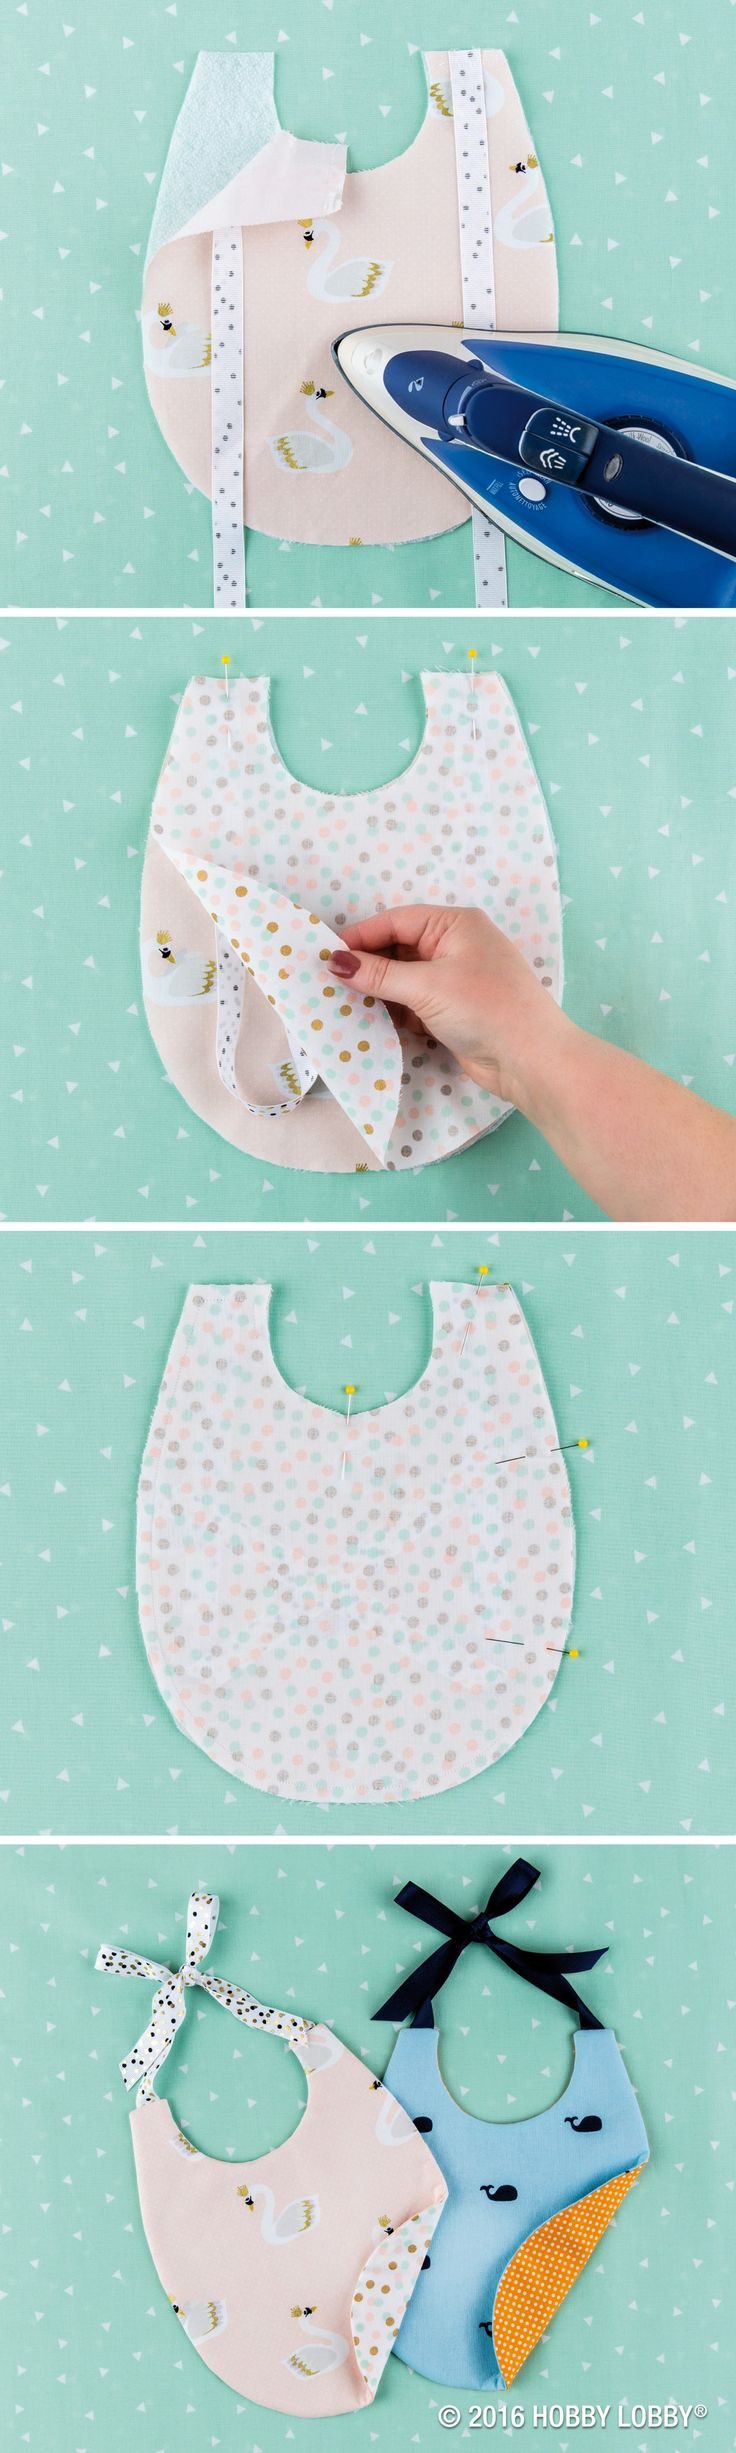 17 best images about fabric sewing projects on pinterest for Space themed fabric hobby lobby